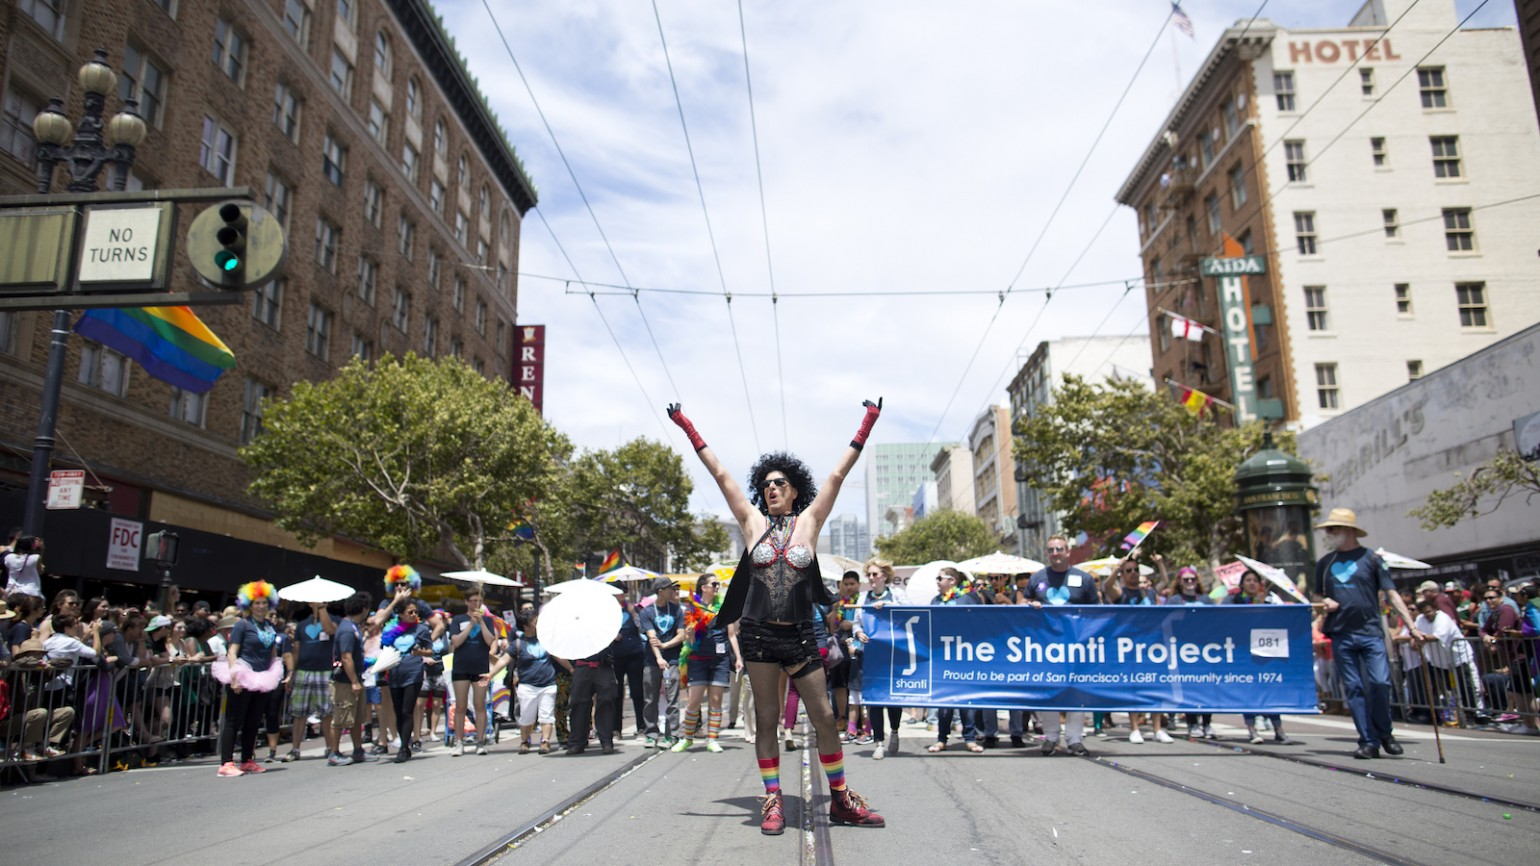 Harry Breaux, 70, a long-term AIDS survivor, runs through the2015 San Francisco Pride Celebration & Parade dressed as Dr. Frank-N-Furter from Rocky Horror Picture Show on June 25, 2015 in San Francisco, Calif. Breaux had dressed as the character for the parade 25 years prior and was recreating the costume in honor of The Shanti Project and long-term AIDS survivors.  (Photo by Tim Hussin)